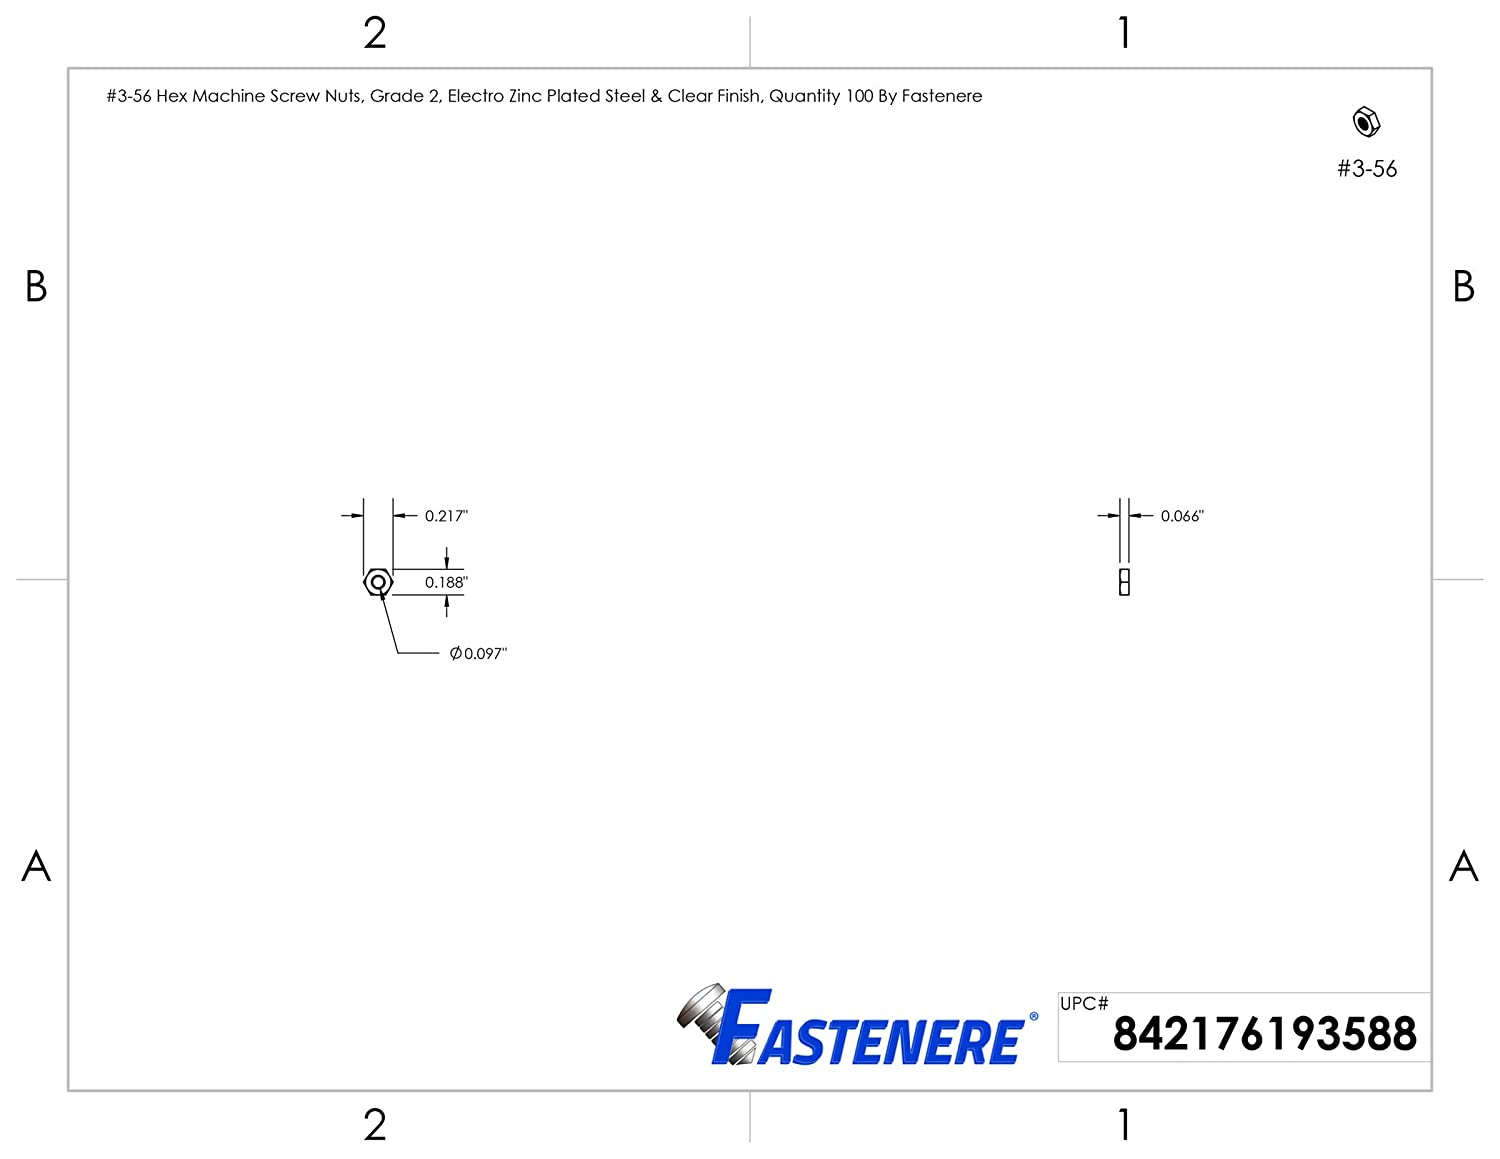 Quantity 100 by Fastenere Grade 2 Electro Zinc Plated Steel /& Clear Finish #4-40 Hex Machine Screw Nuts